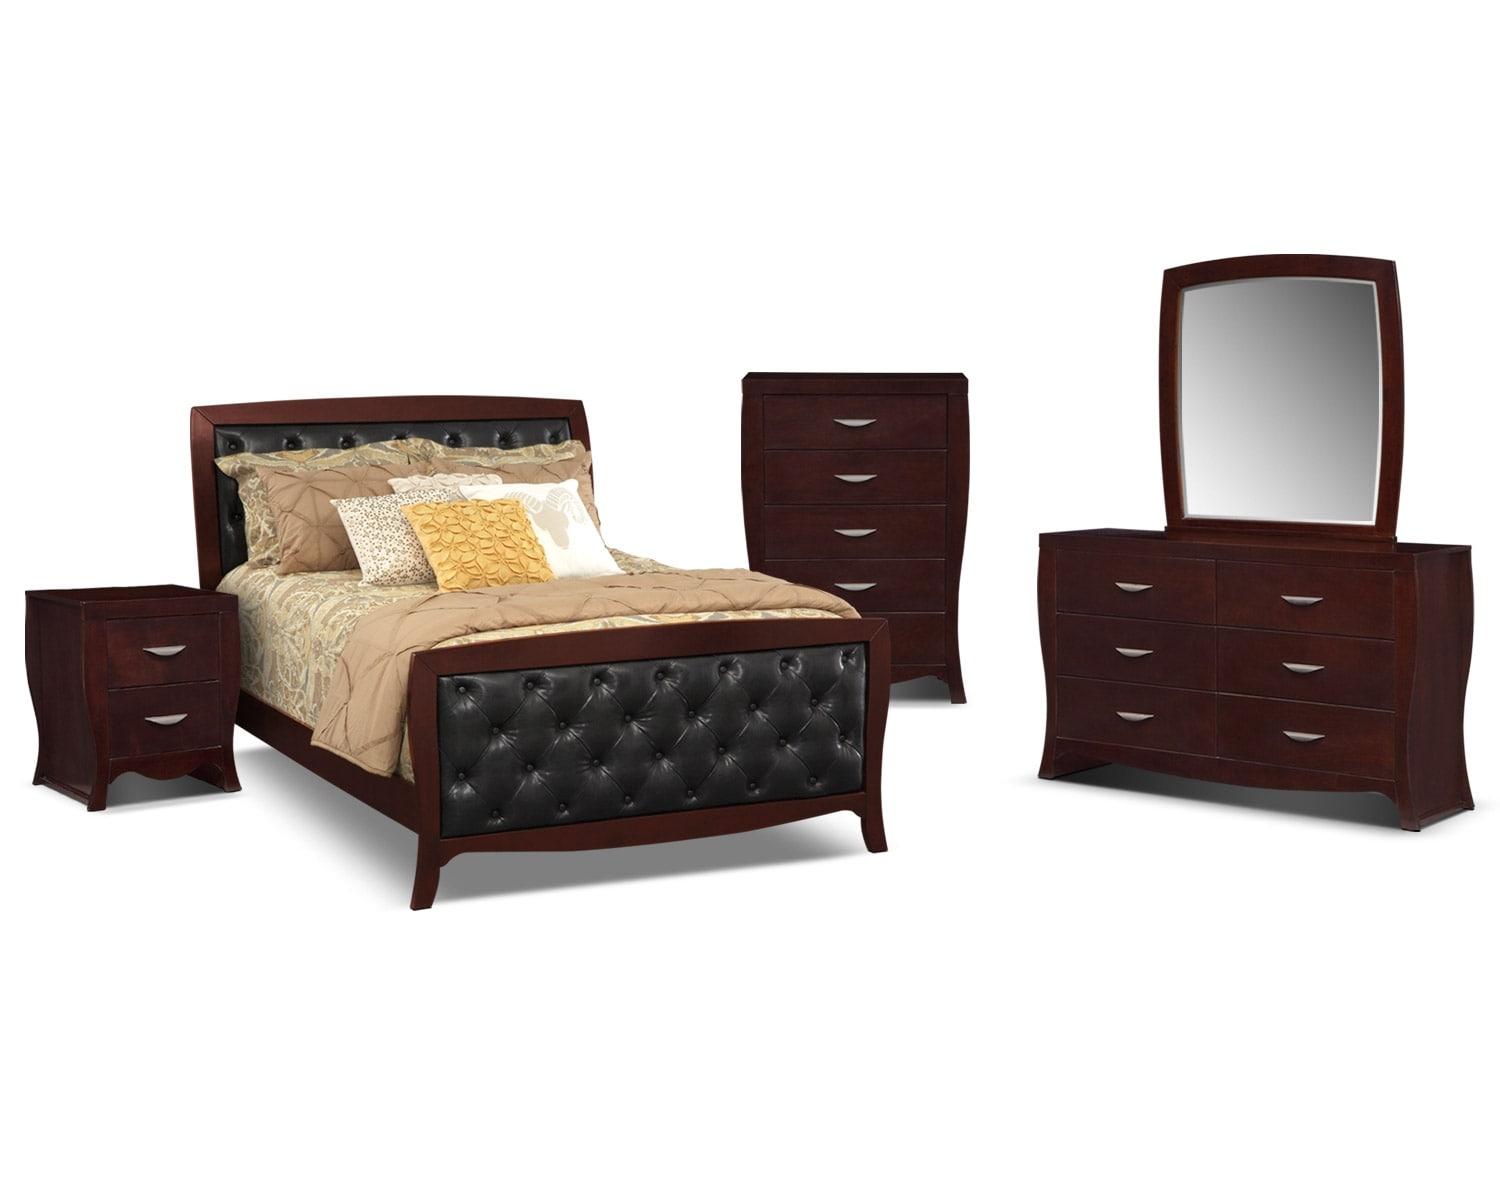 The Jaden Tufted Bedroom Collection - Merlot